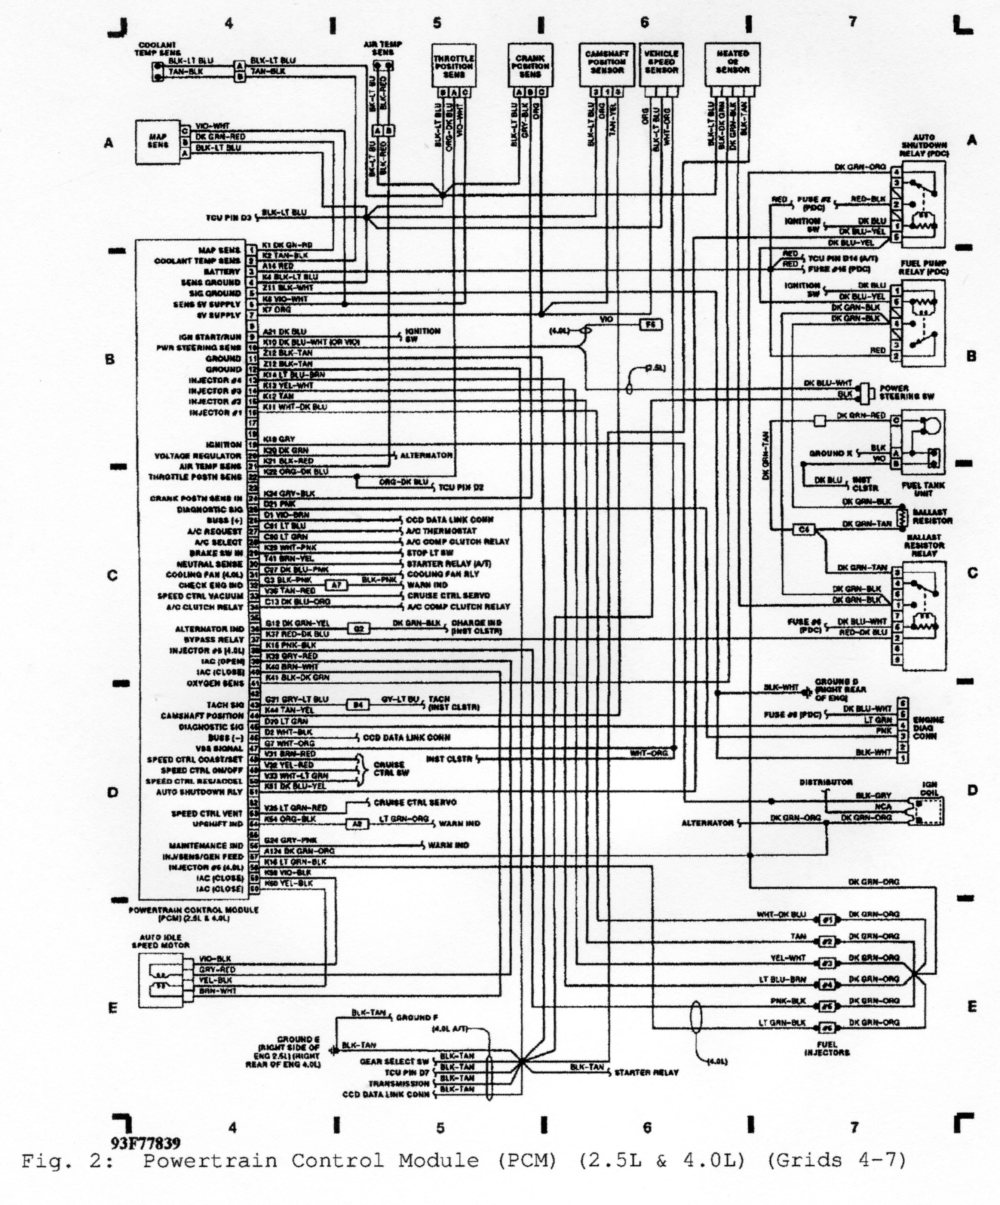 medium resolution of 1992 pcm wiring diagram jeep cherokee forum1992 pcm wiring diagram